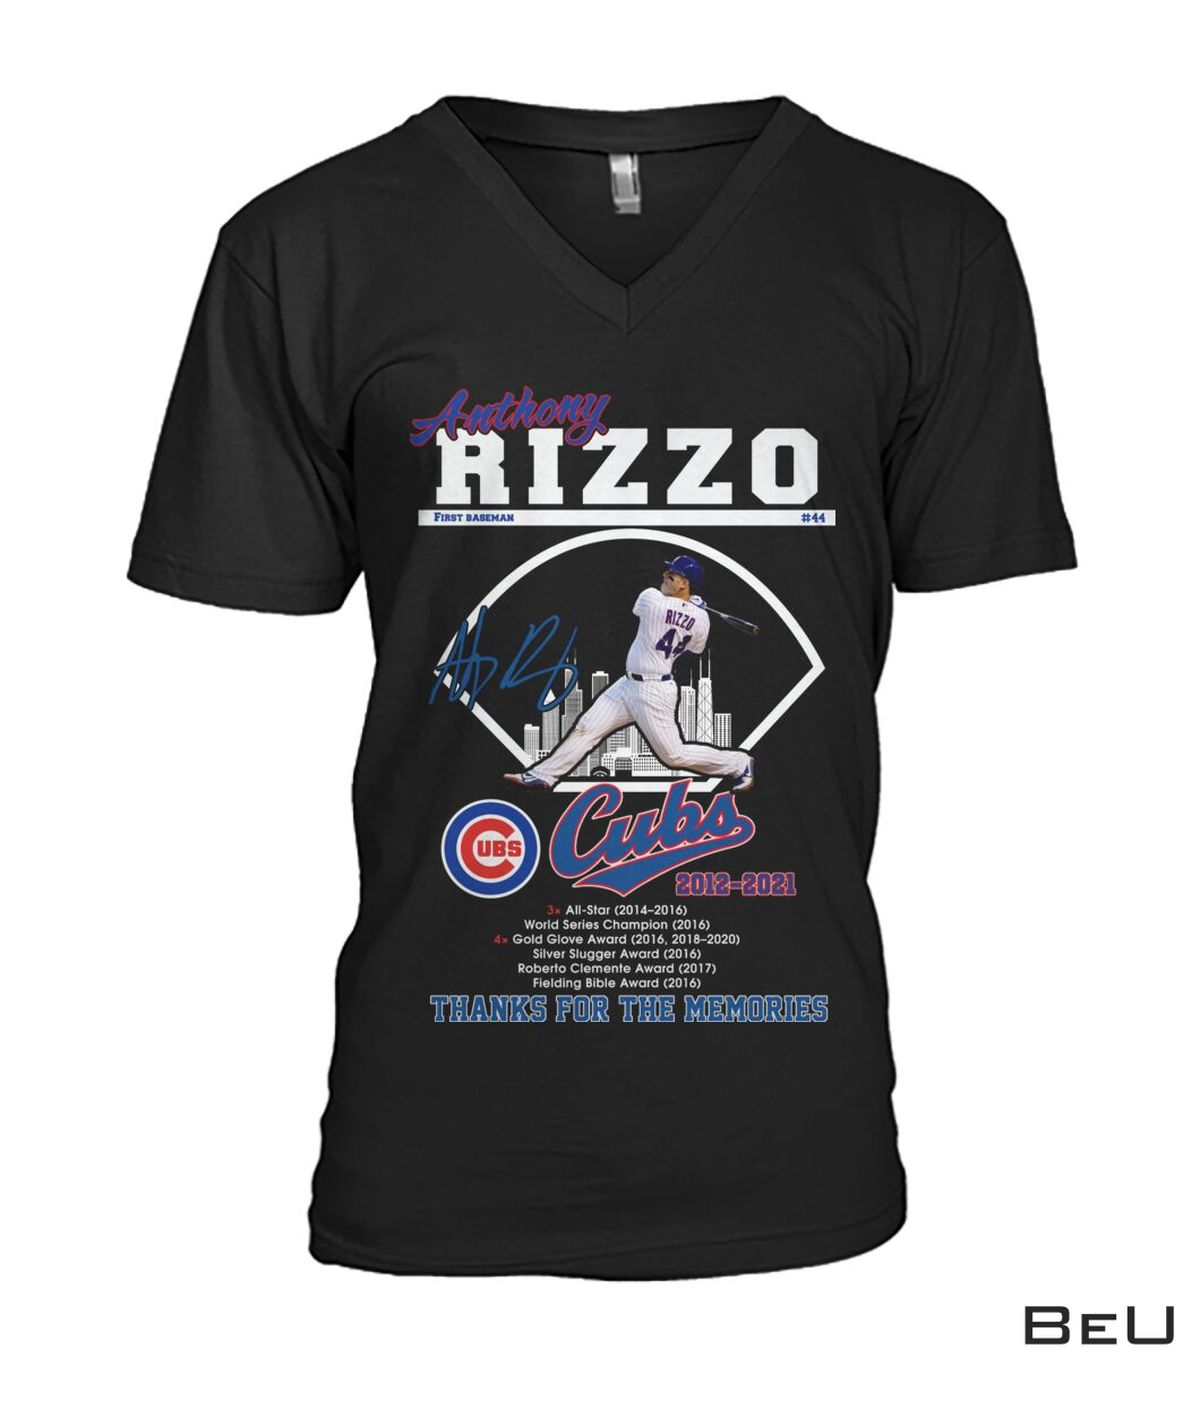 Only For Fan Anthony Rizzo First Base Cubs 2012 2021 Thank You Shirt, hoodie, tank top